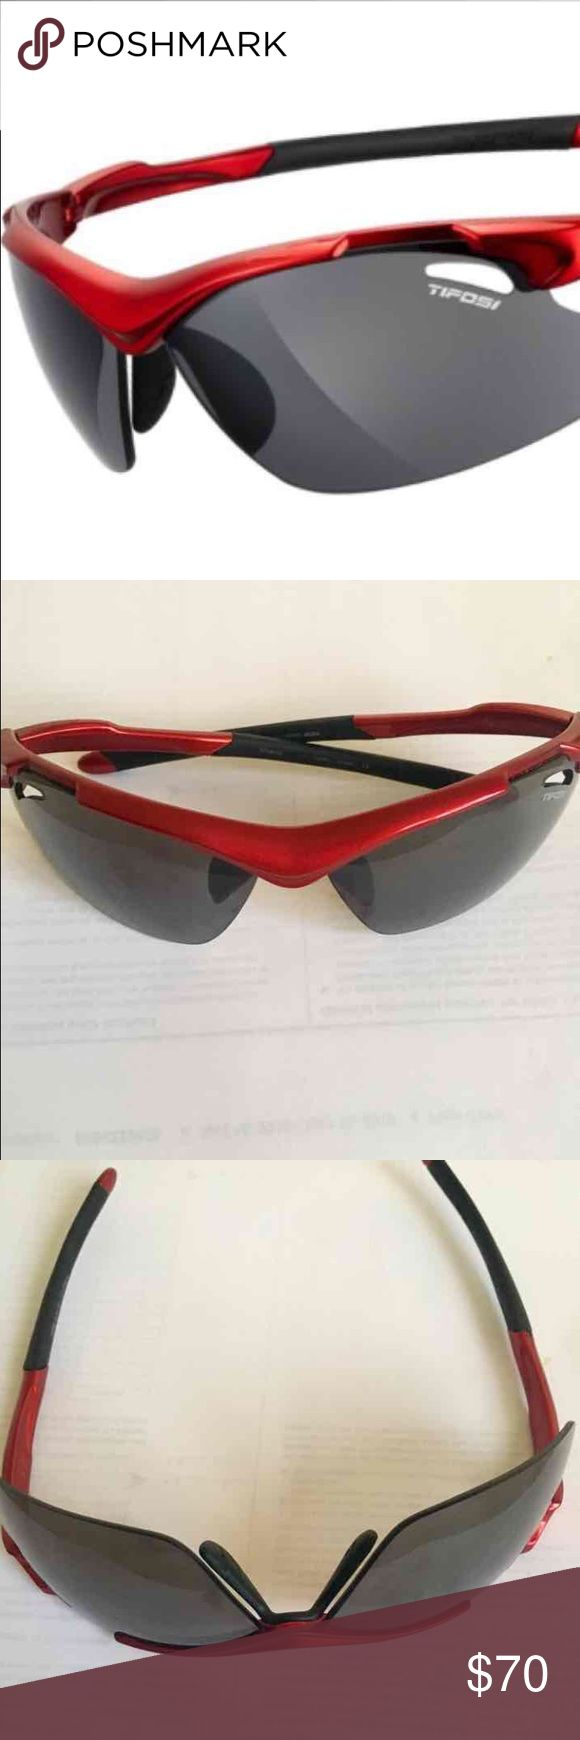 TIFOSI 2.0 Tyrant Golf sunglasses 2.0 golf Sunglasses with red frame  Never worn! In new condition. Tifosi Optics Accessories Sunglasses